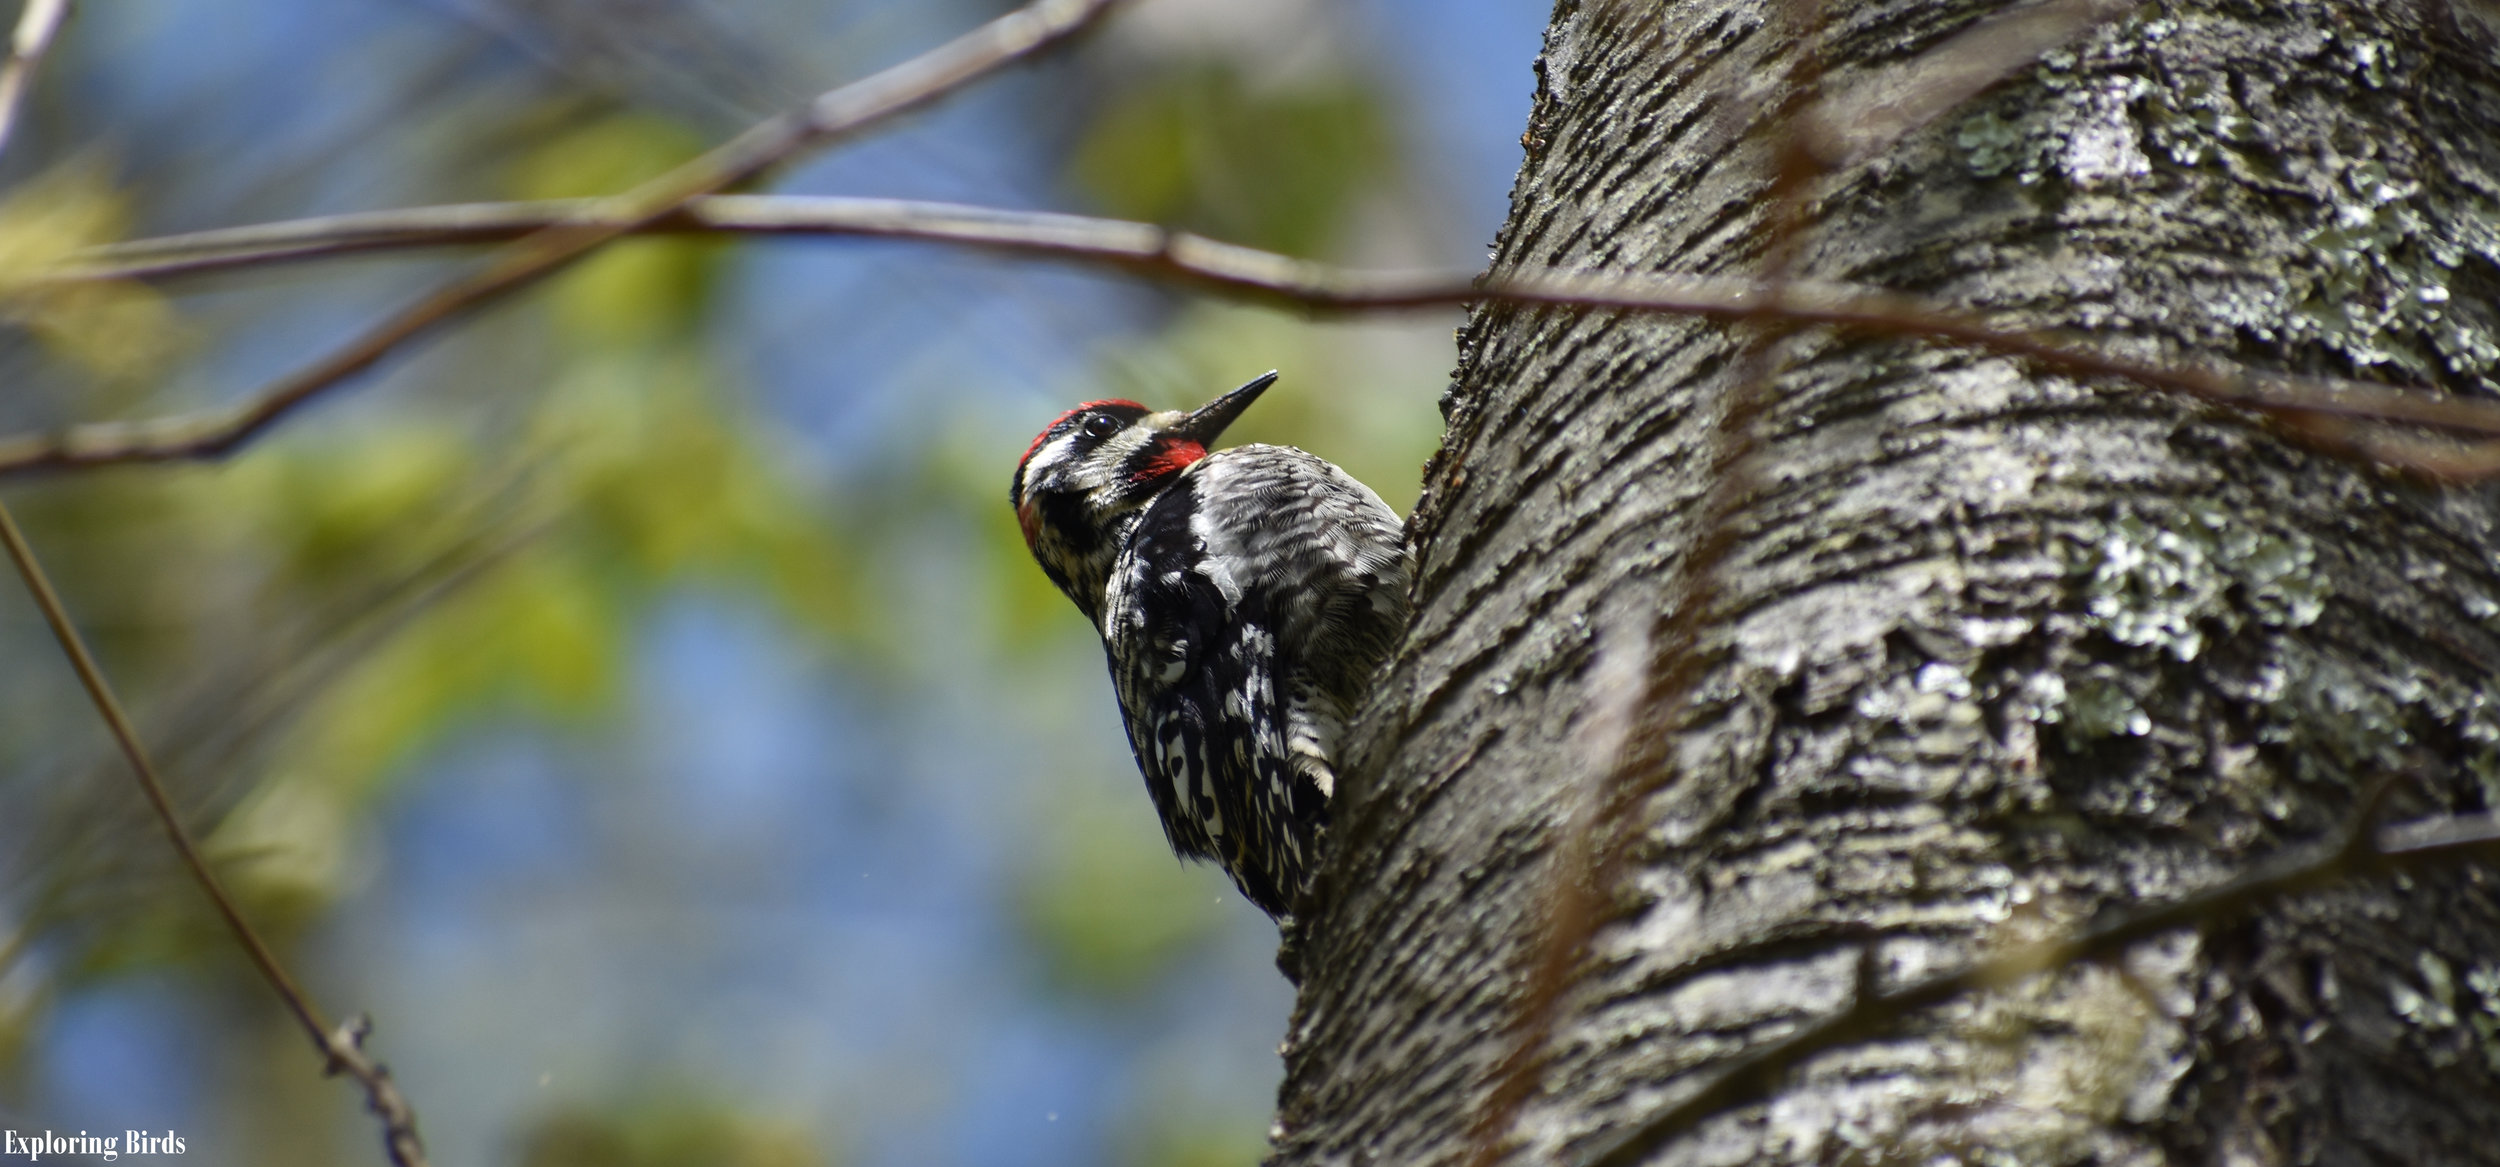 Ho to Attract Yellow-Bellied Sapsucker